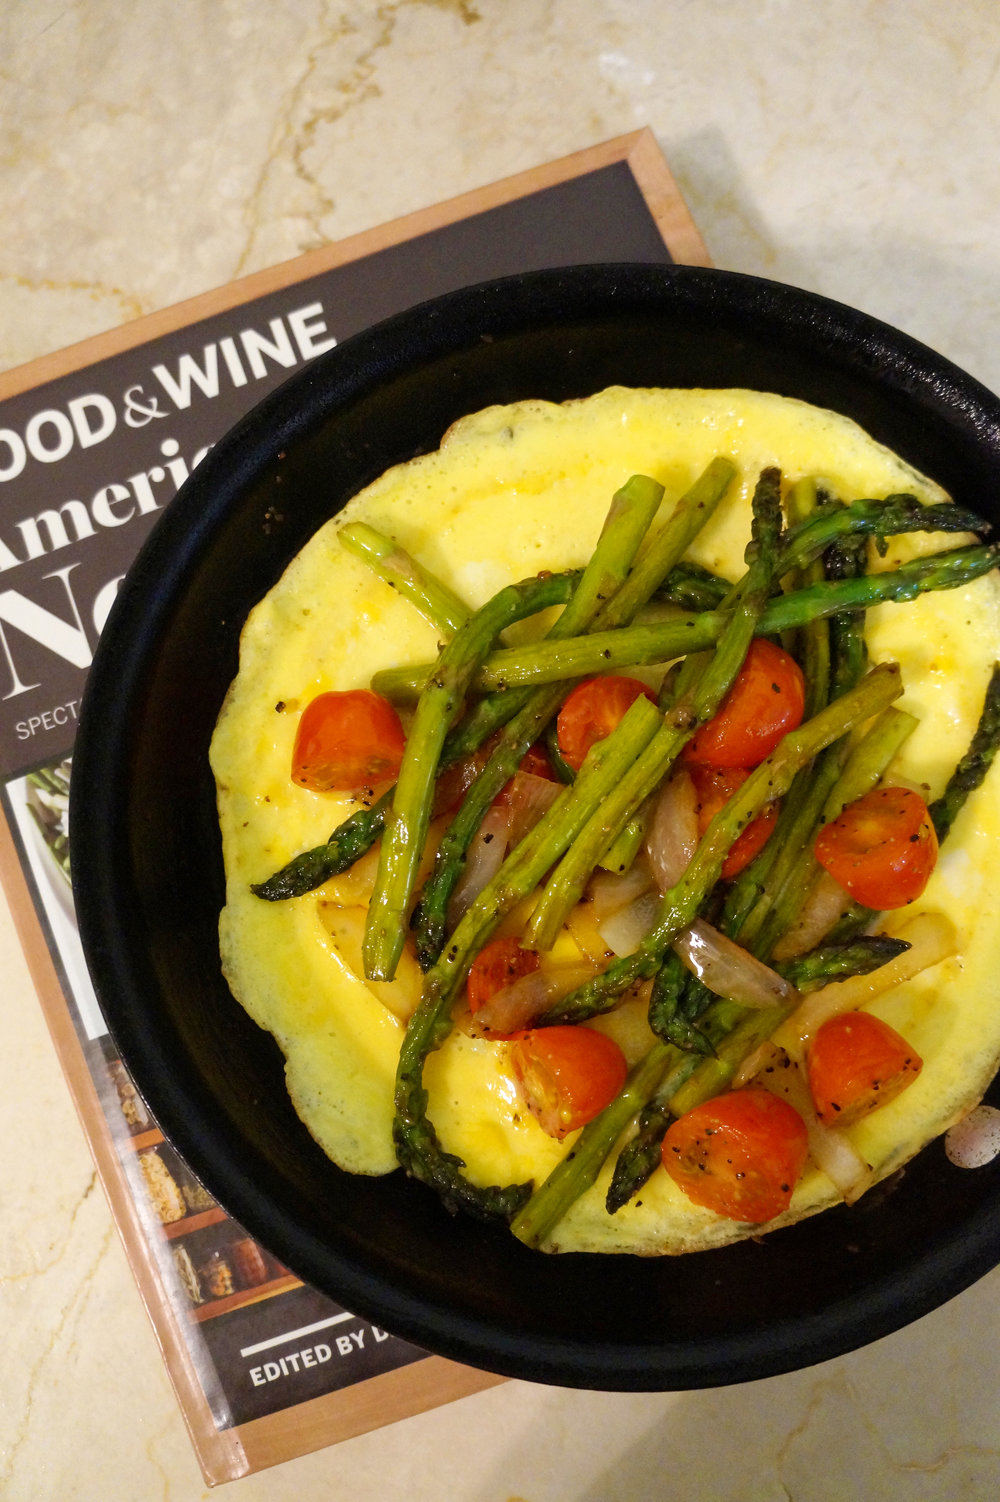 Andrea Fenise Memphis Fashion Blogger and Memphis Running Blogger shares post workout frittata asparagus, tomato recipe with cotija cheese